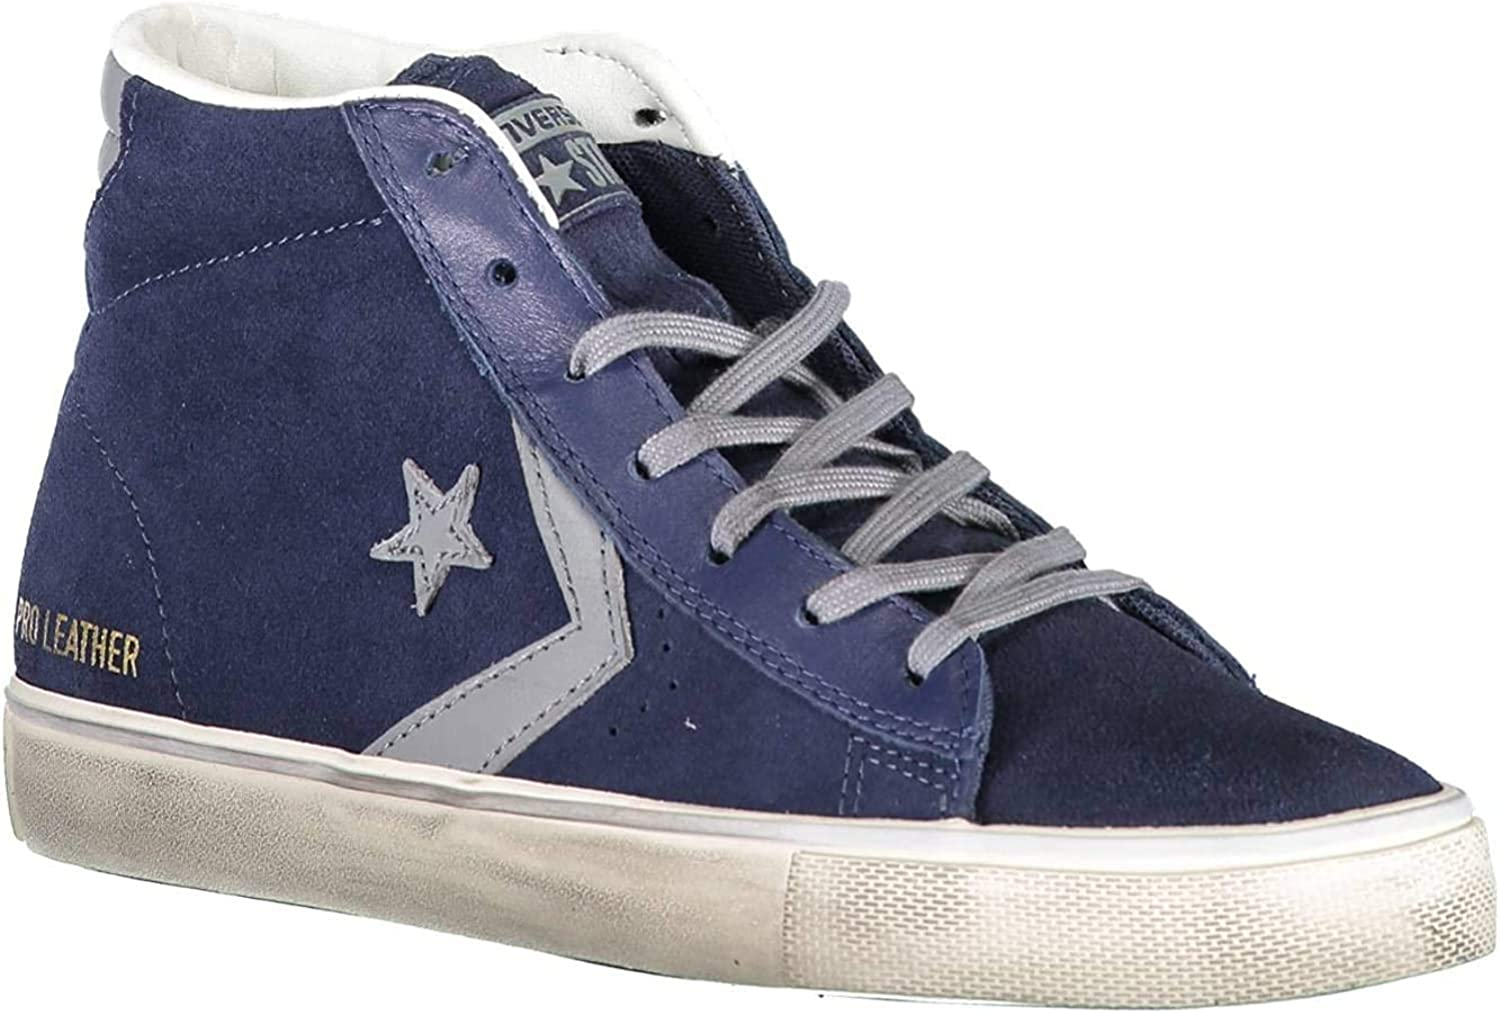 Converse Lifestyle Pro Leather Vulc Distressed Mid, Sneakers Basses Mixte Adulte Bleu Athletic Navy Mason Turtledove 406